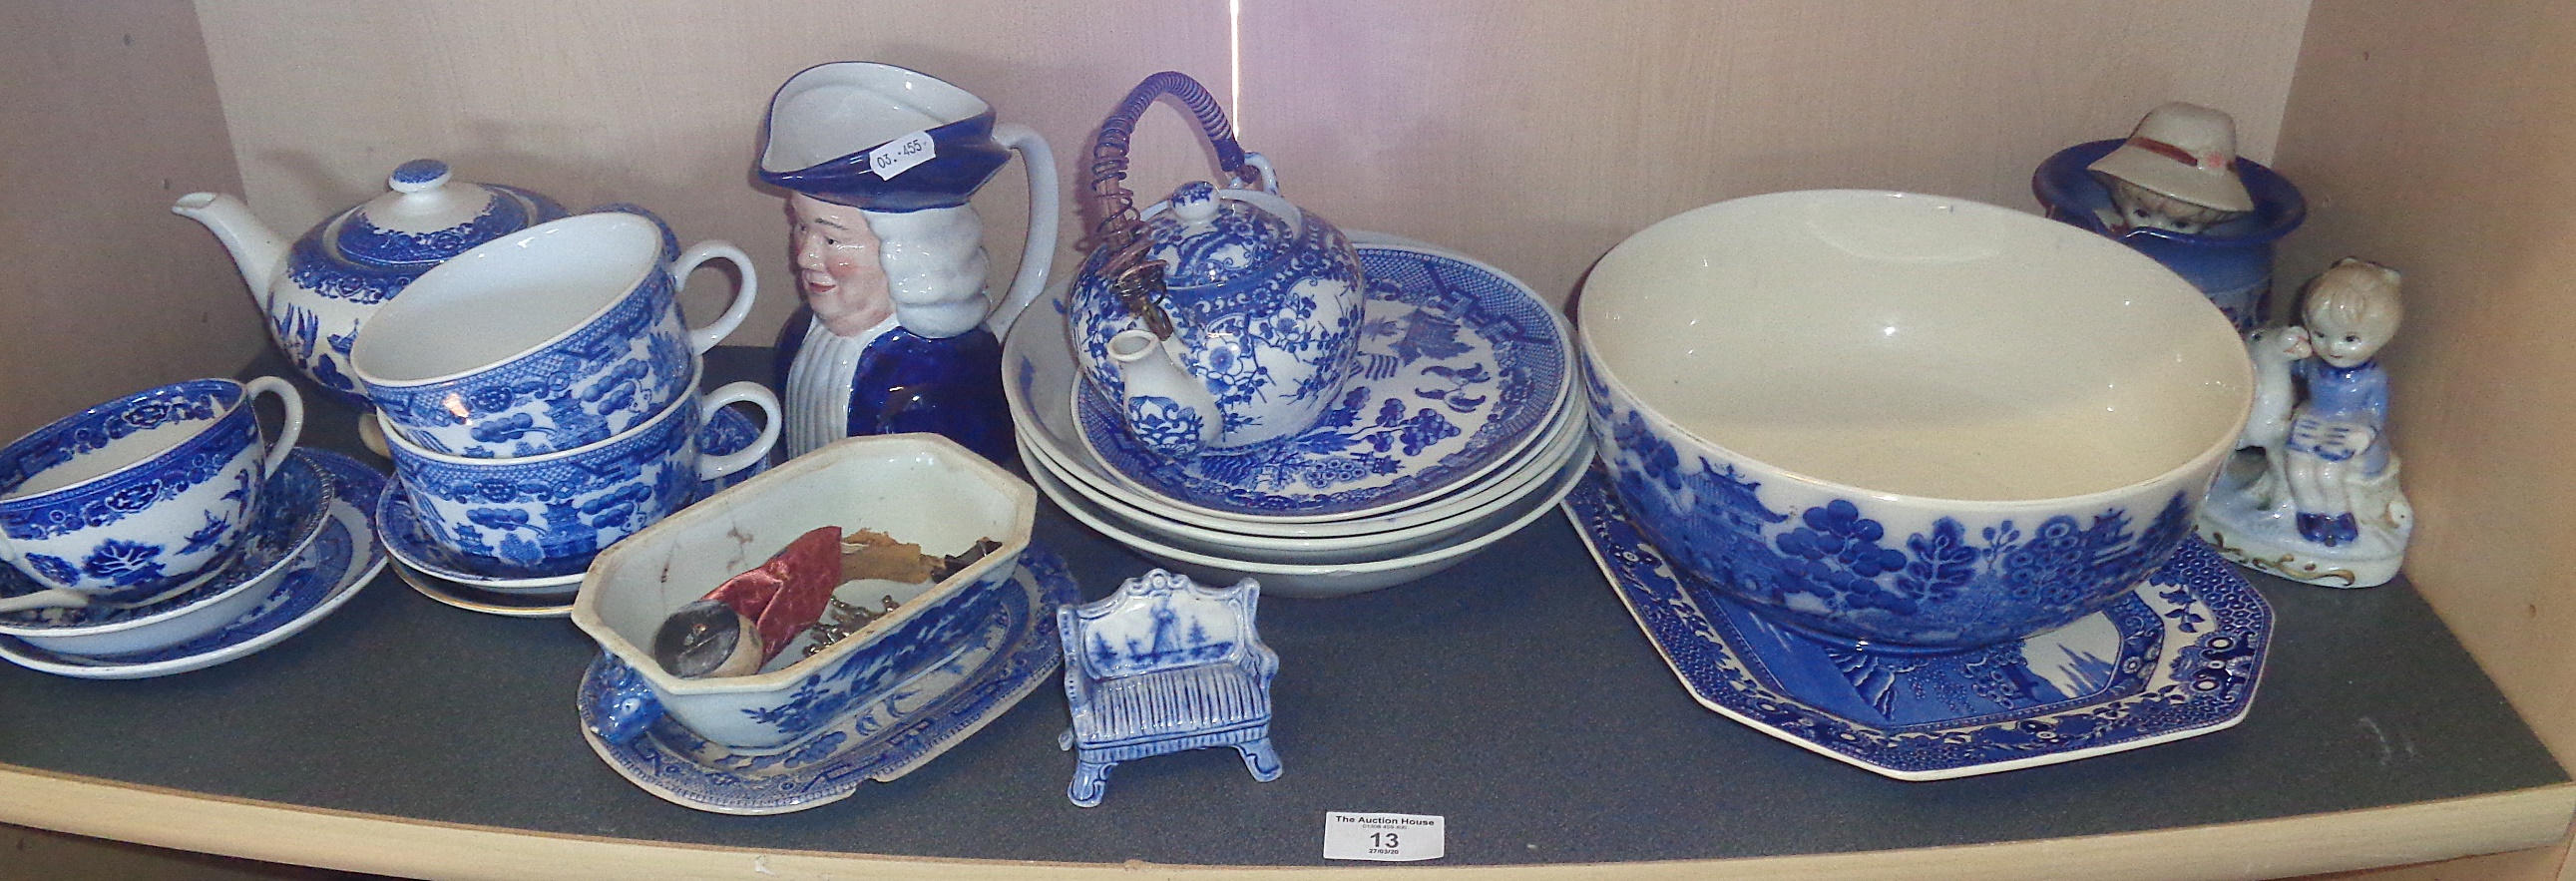 """Lot 13 - Shelf of assorted blue and white china, inc. Doulton """"Willow"""" bowl and others"""